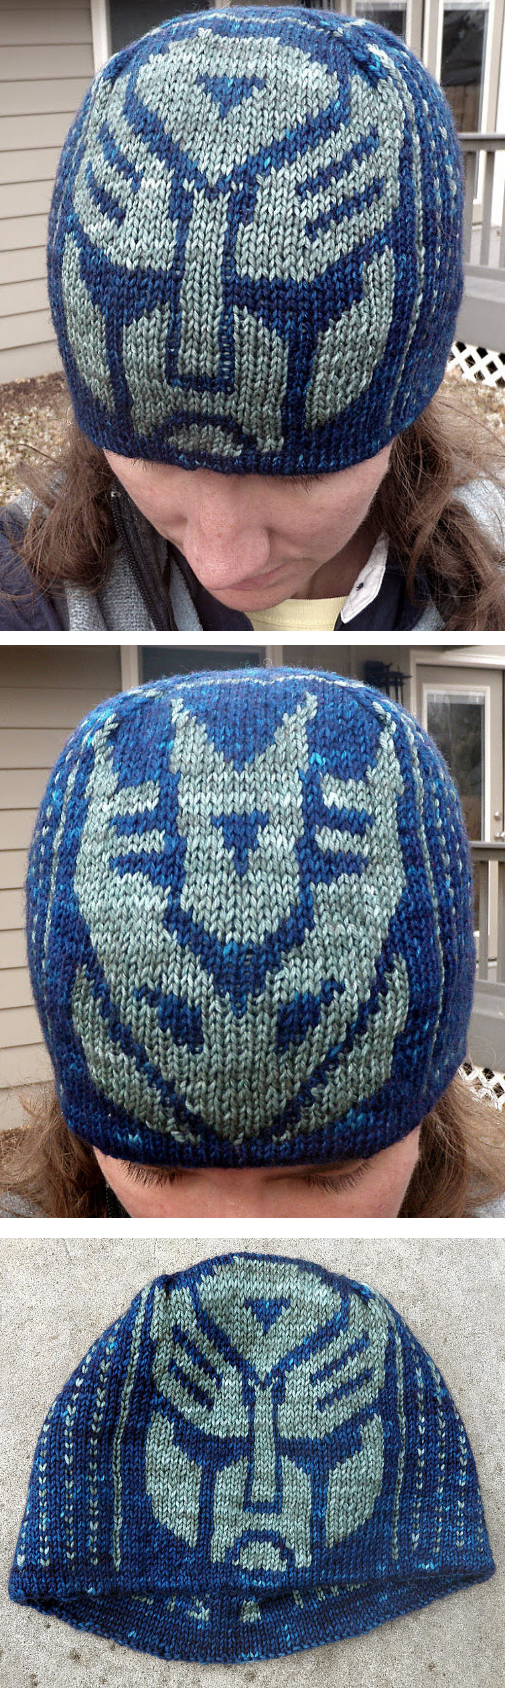 Free Knitting Pattern for Transformers Hat - This hat pattern comes with  Autobot and Decepticon charts to choose from or knit both! Designed by Lori  Magnus. f53362cfca4